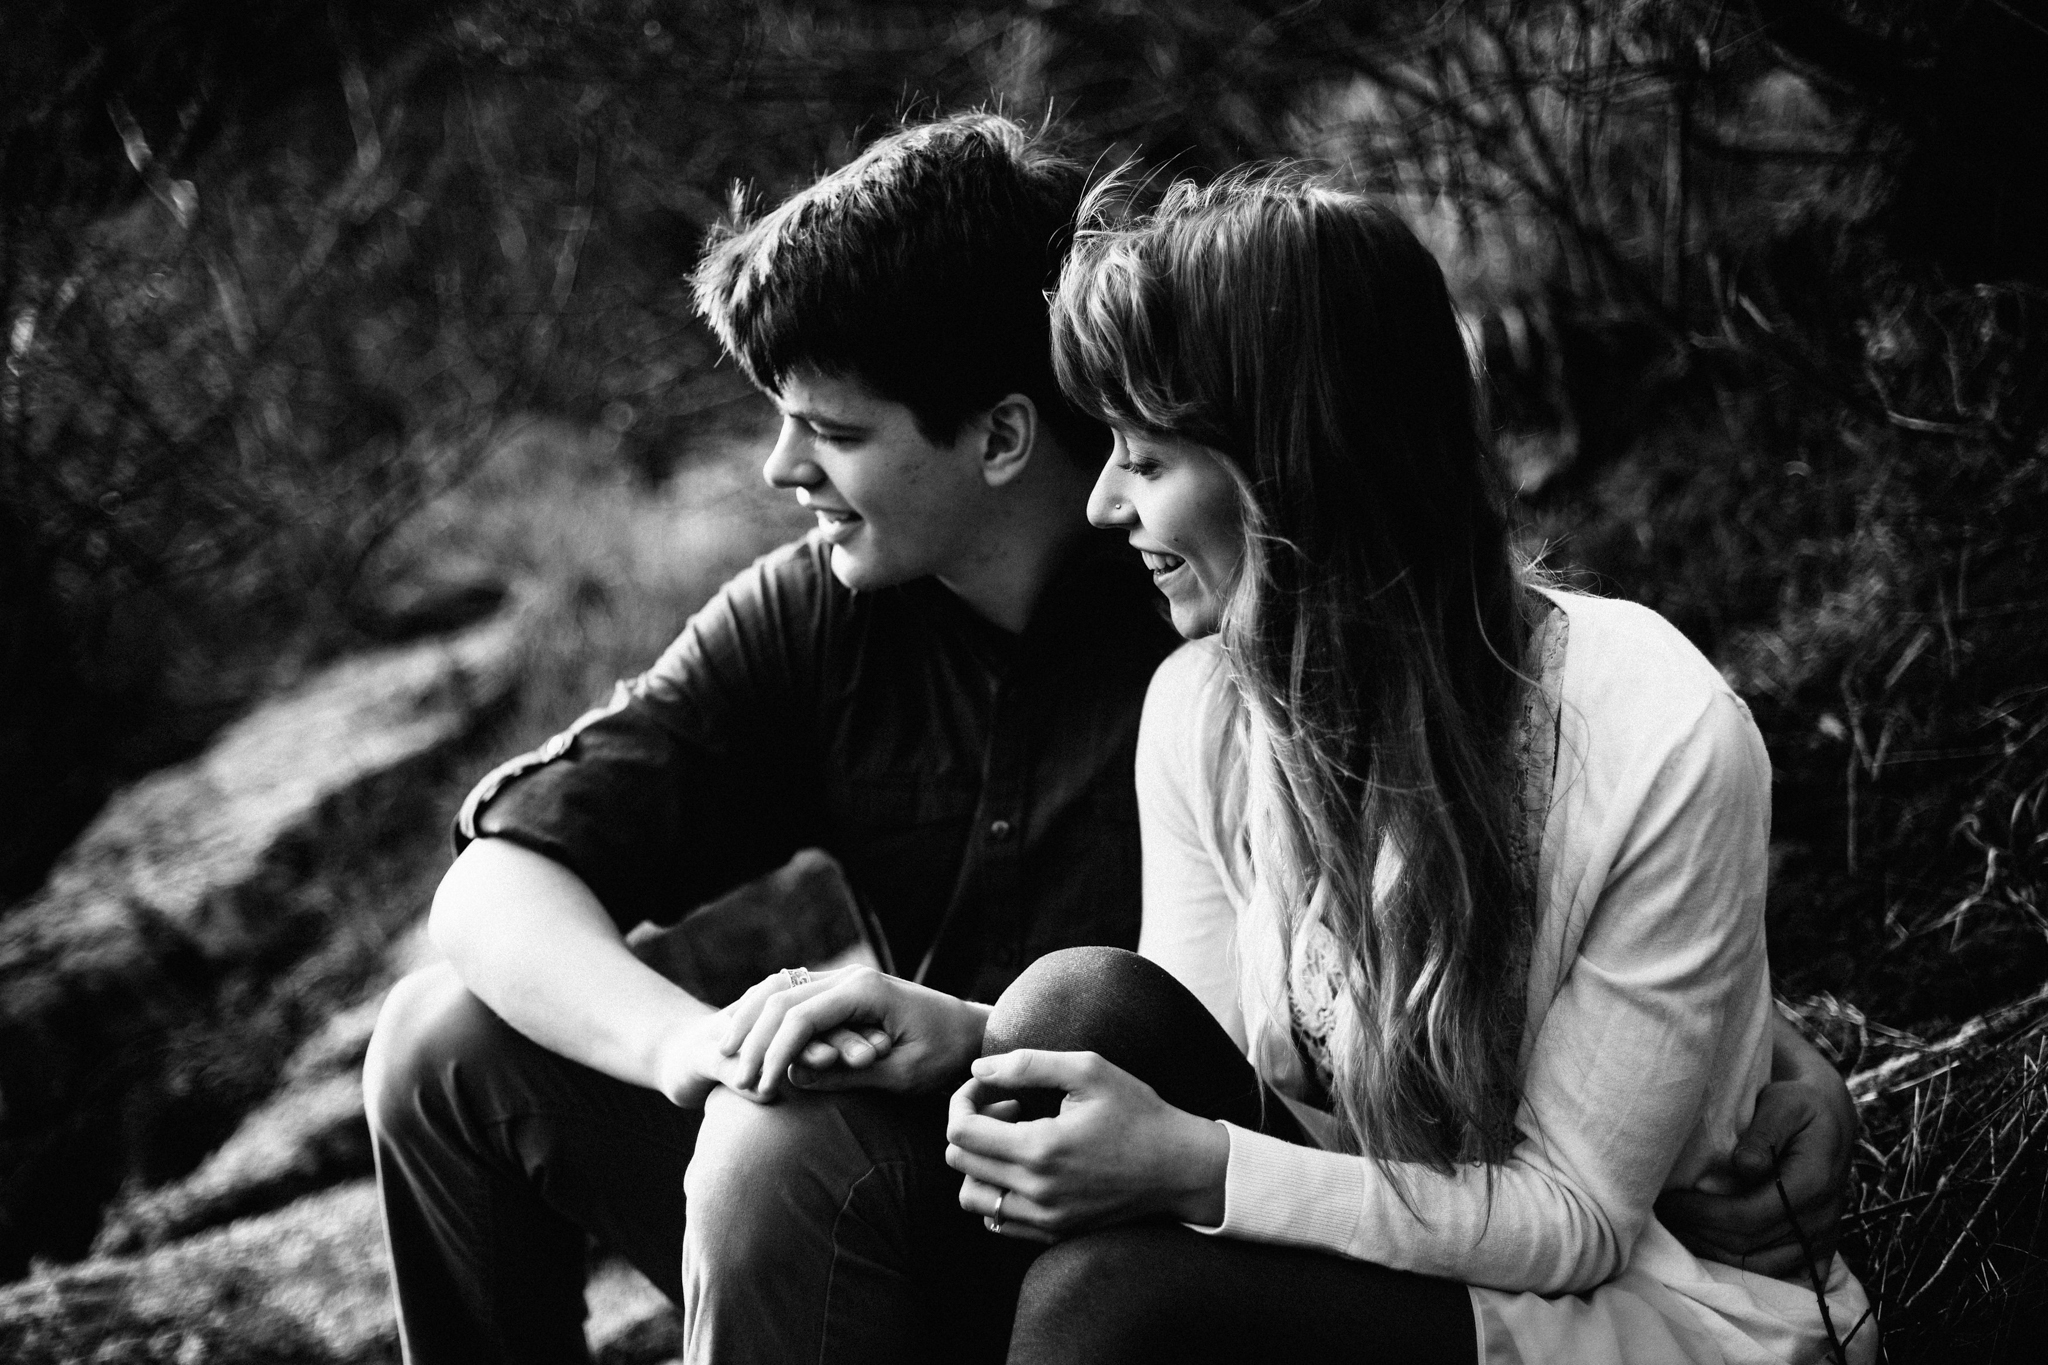 Vancouver Whytecliff Park Engagement Photographer - Emmy Lou Virginia Photography-14.jpg